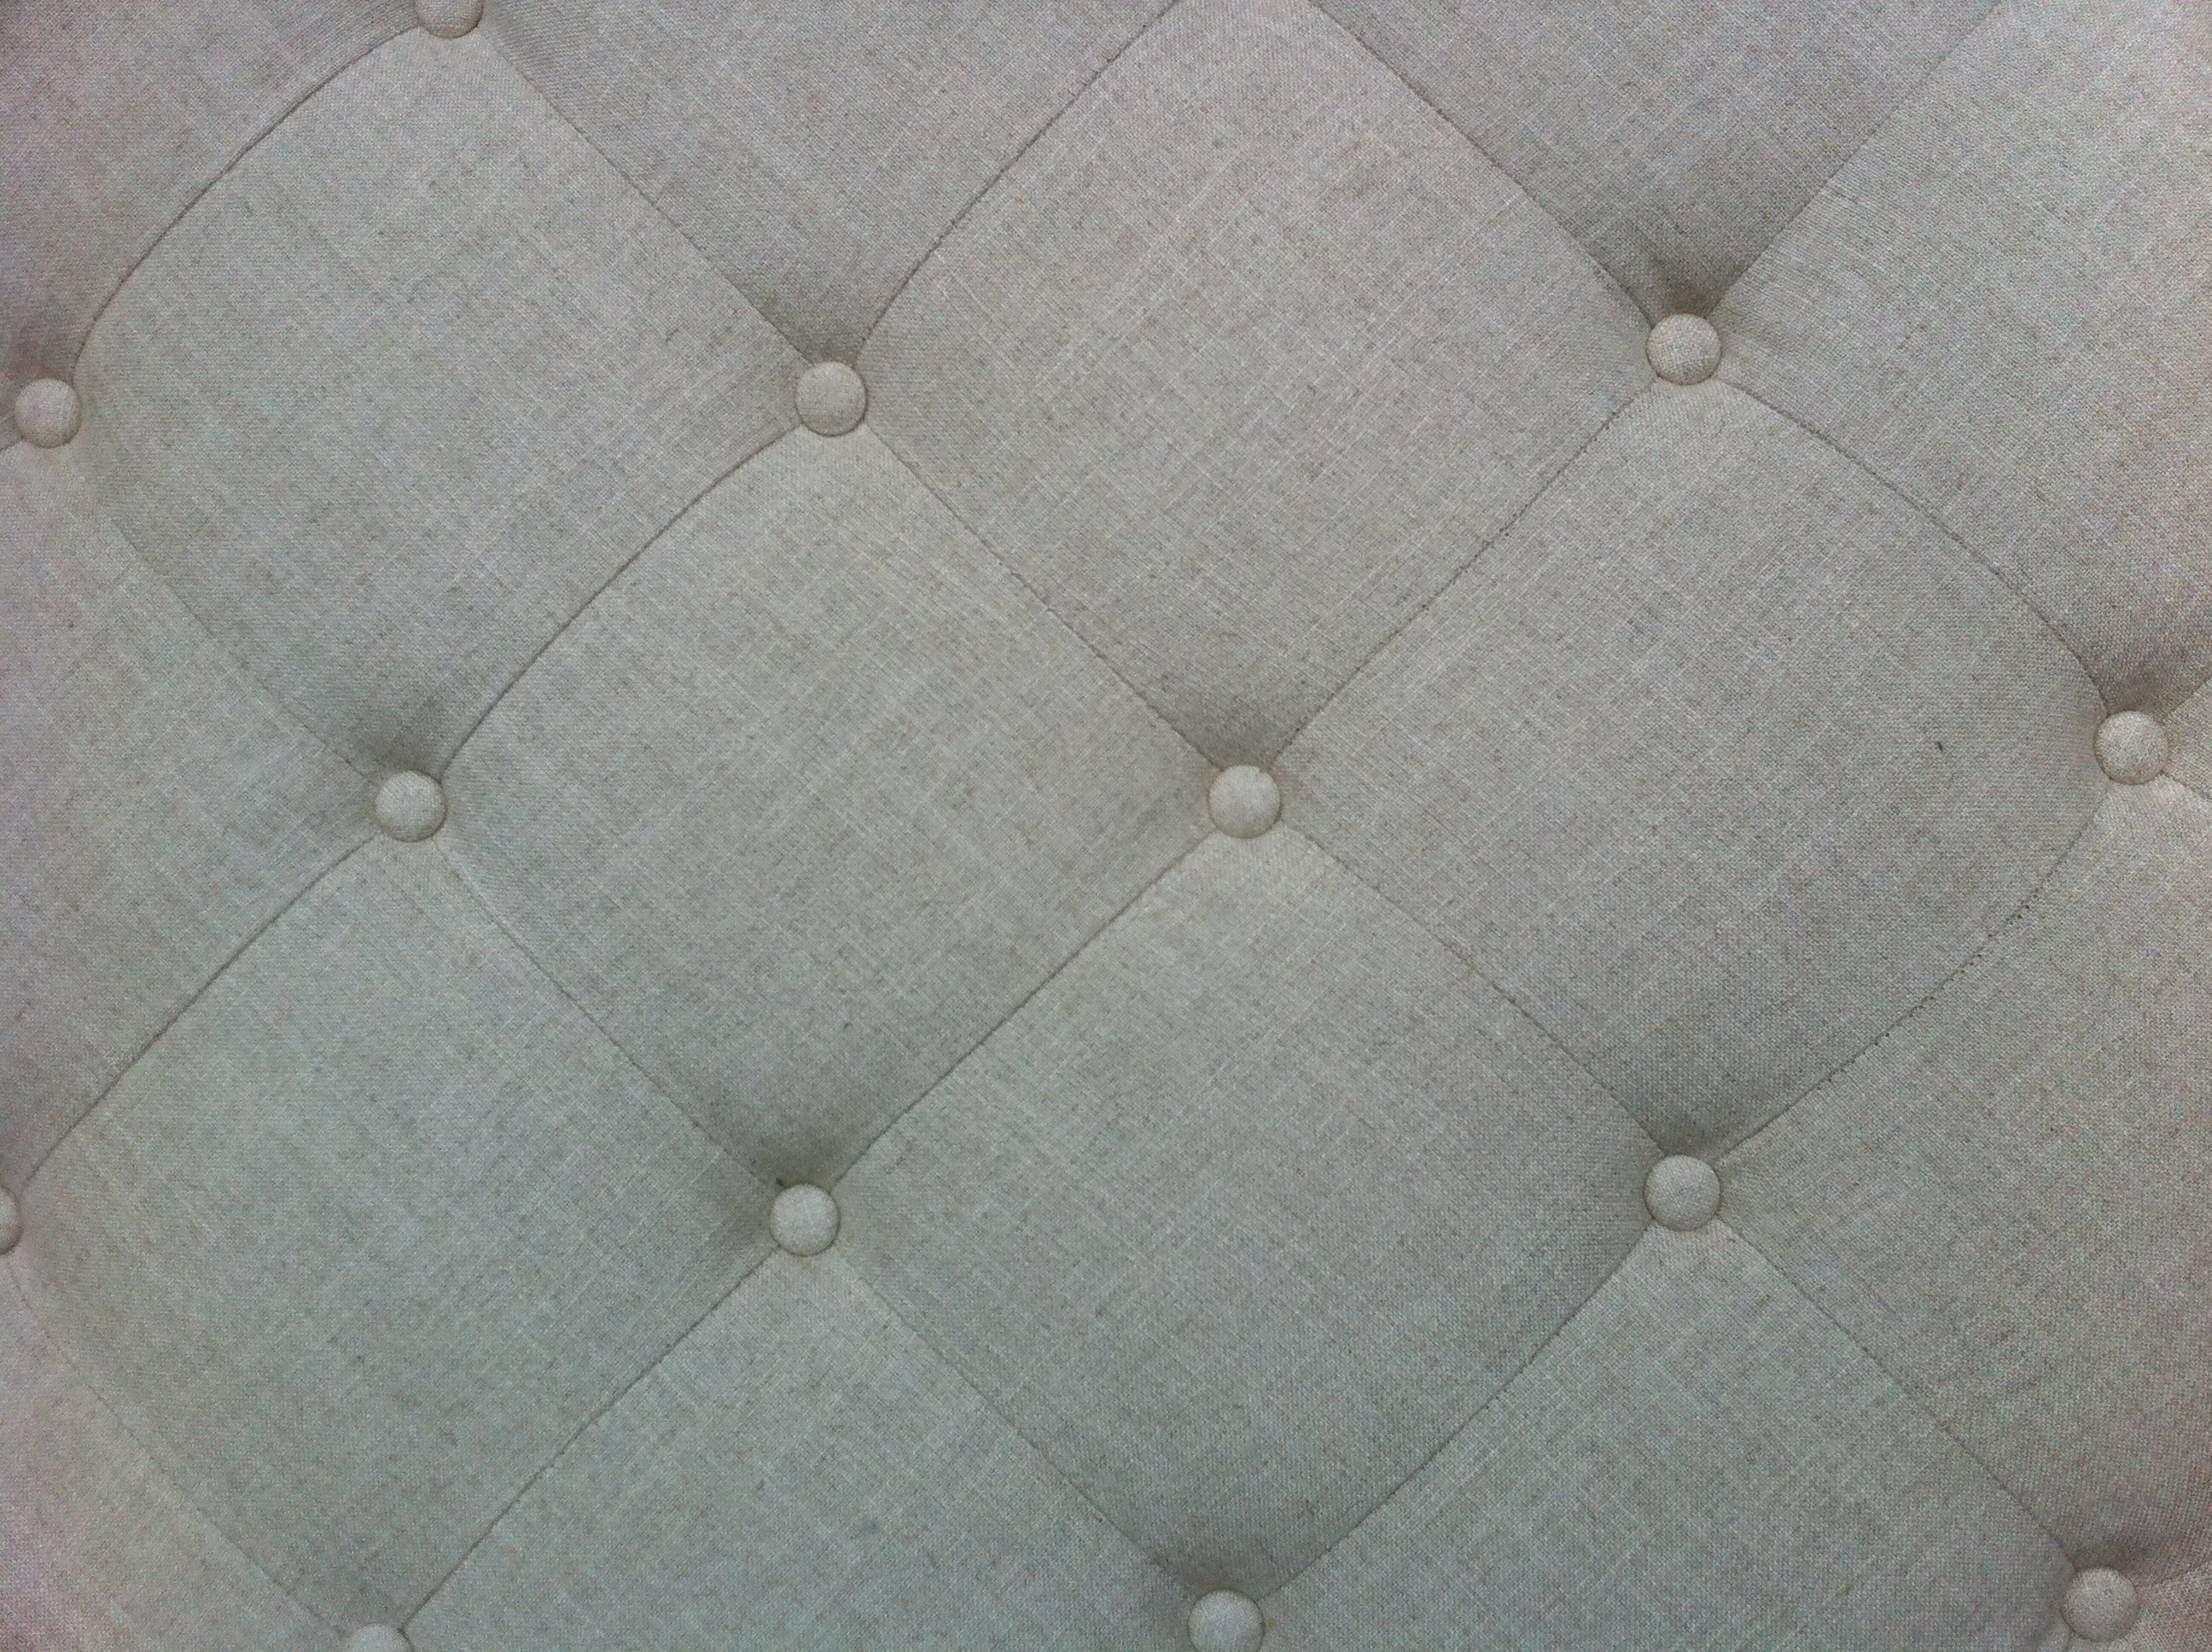 A tight shot of ottoman light colored fabric